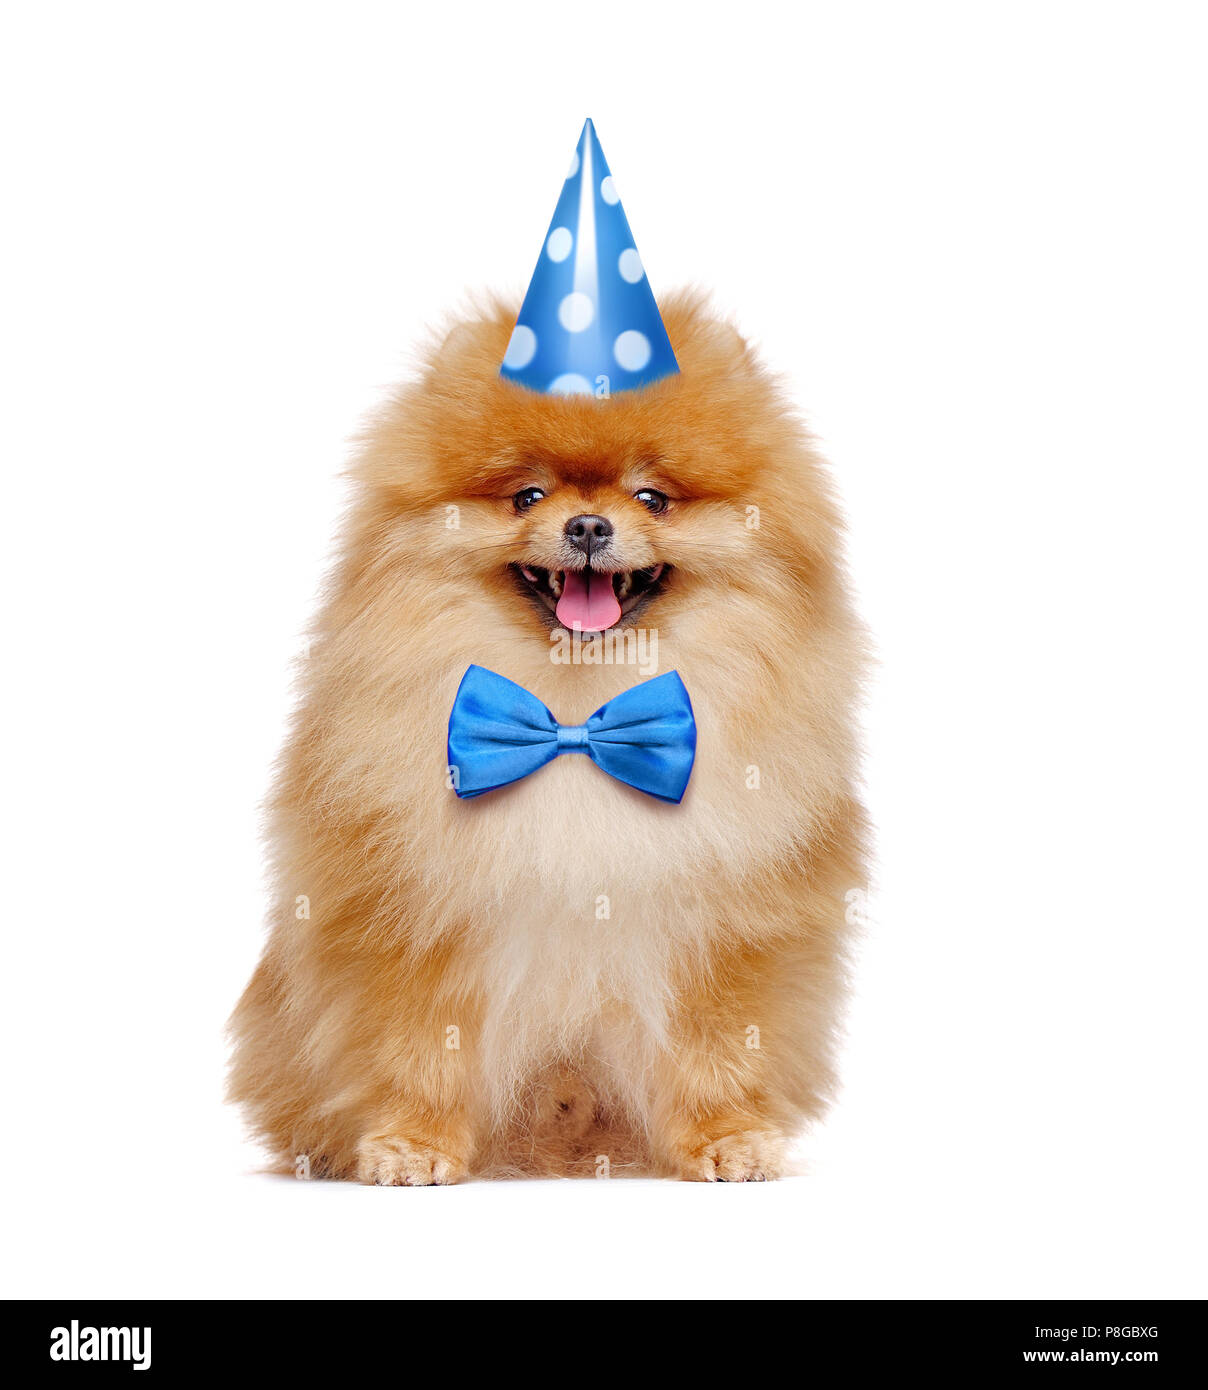 Pretty red pomeranian spitz wearing birthday outfit - Stock Image